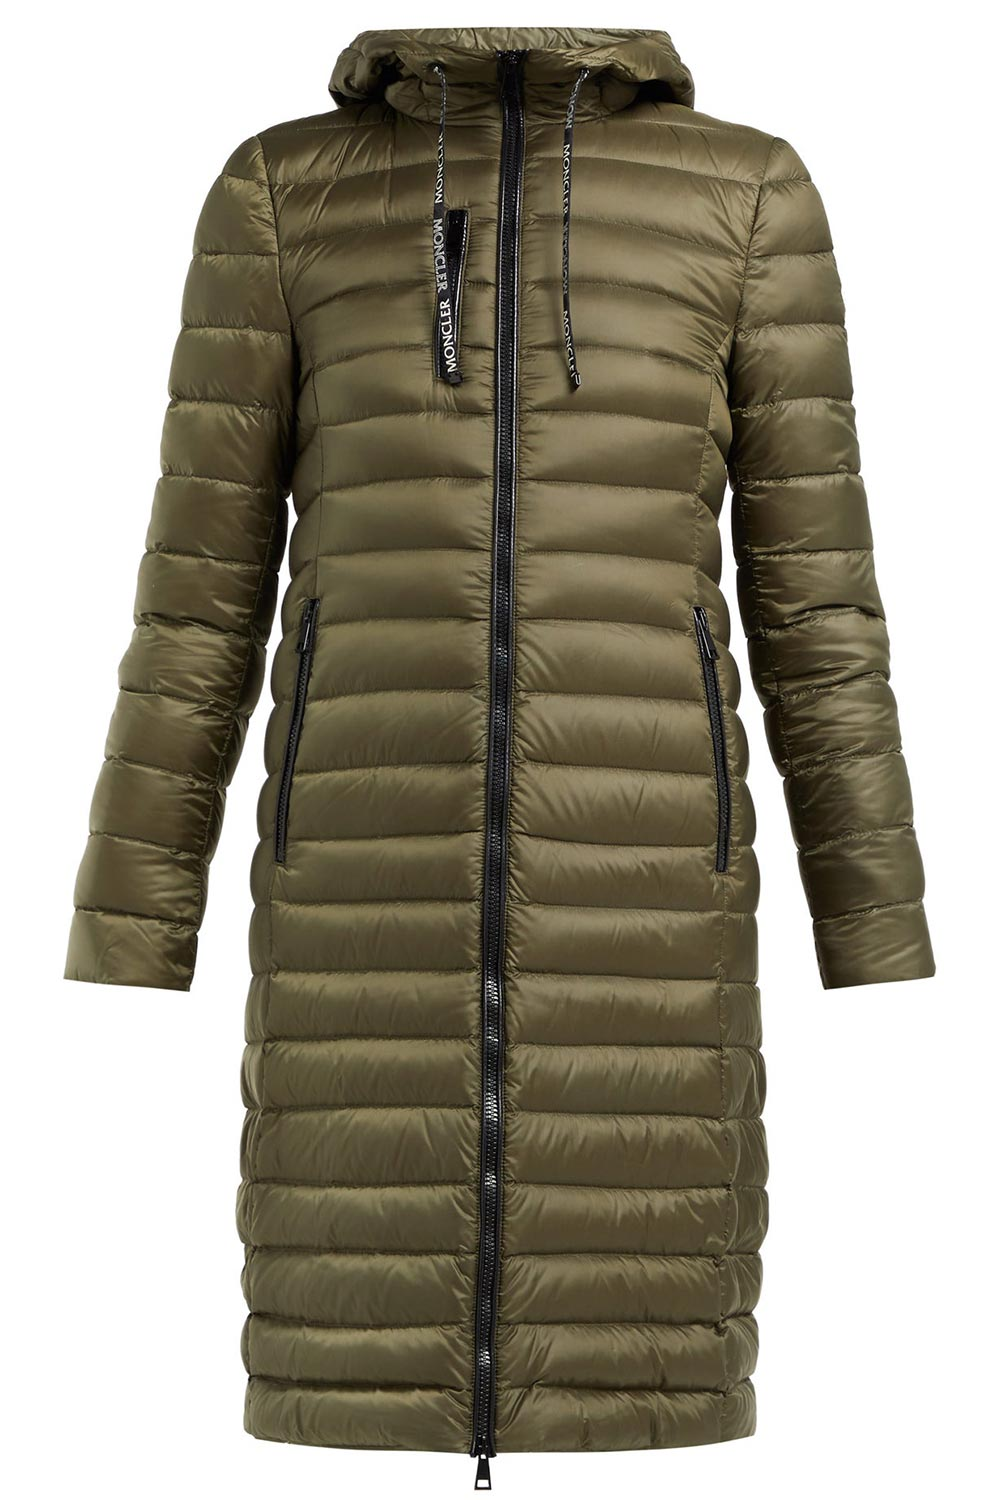 bd8321126 The Best Winter Coats To Keep You Snug And Stylish This Season